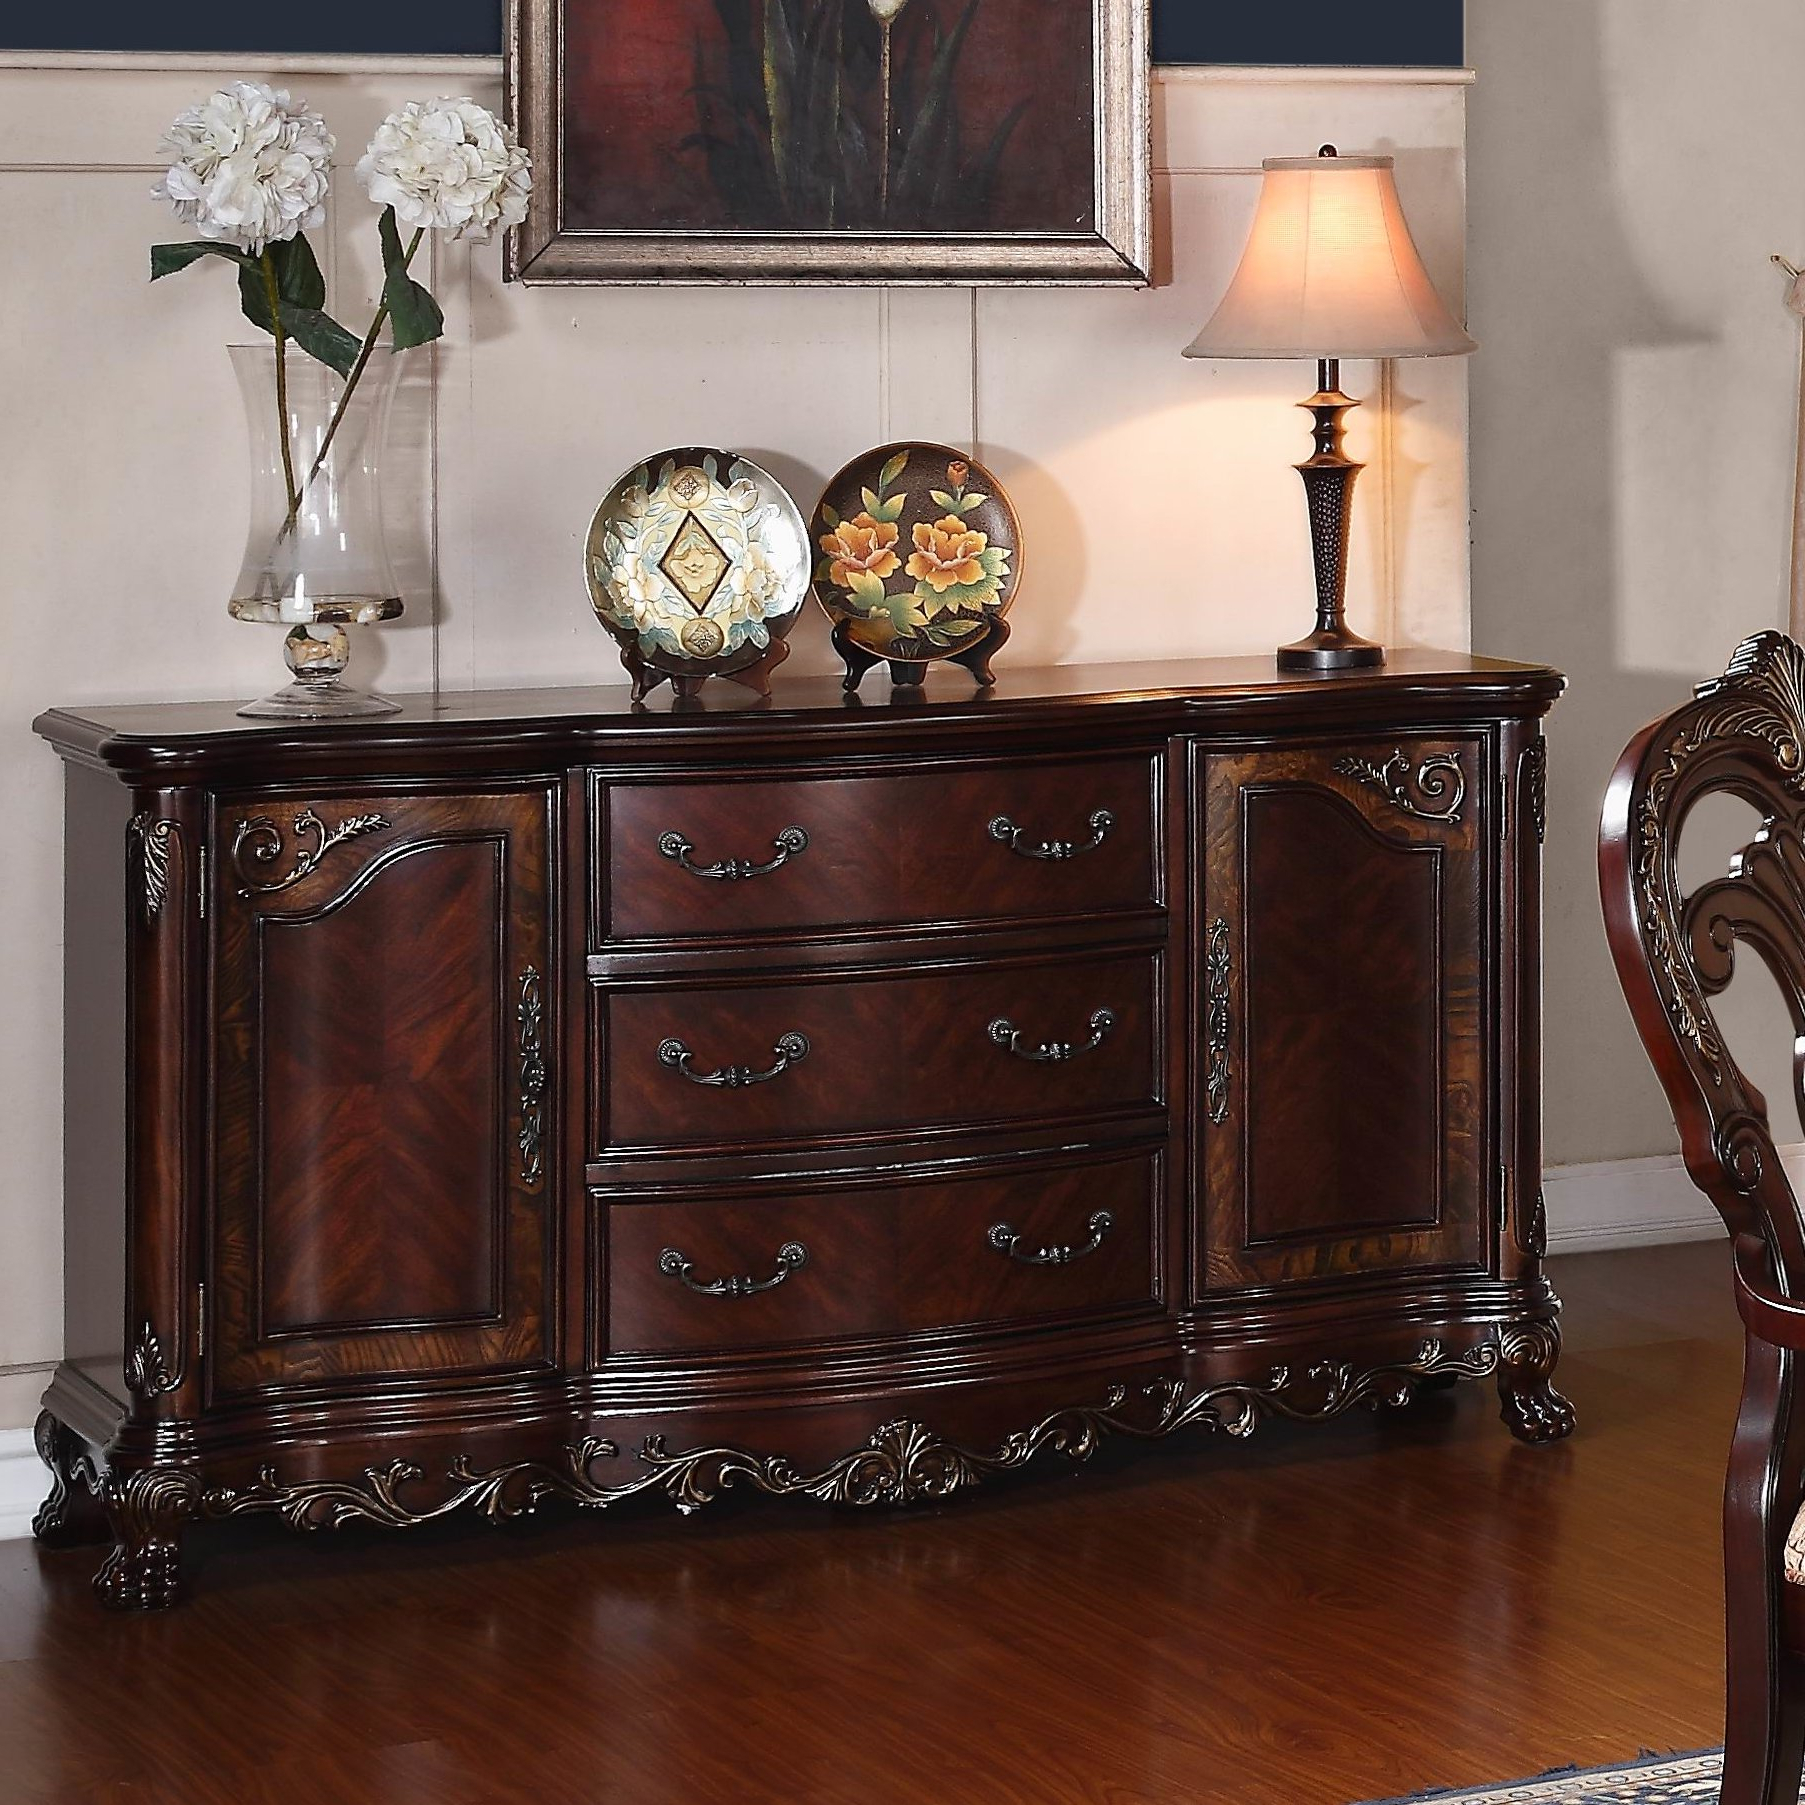 Chalus Sideboards Throughout Most Recently Released Chalus Sideboard (Gallery 1 of 20)